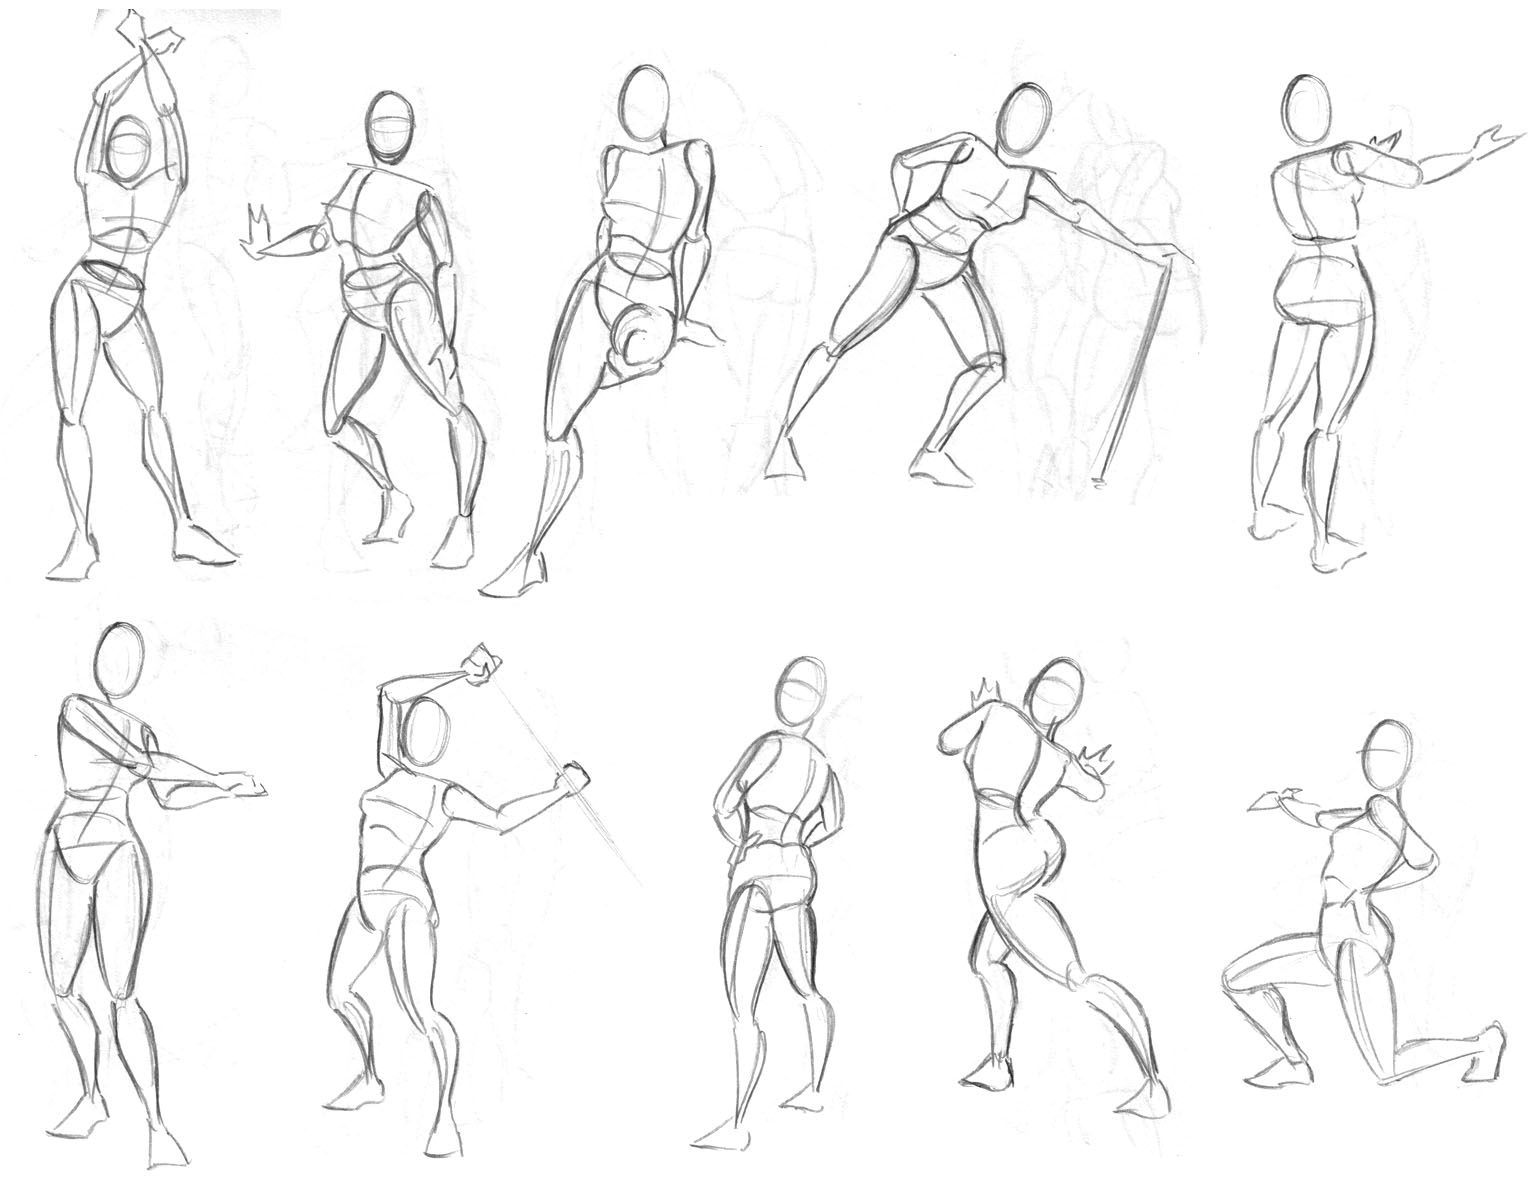 figure_drawing_by_phoenixelement.jpg